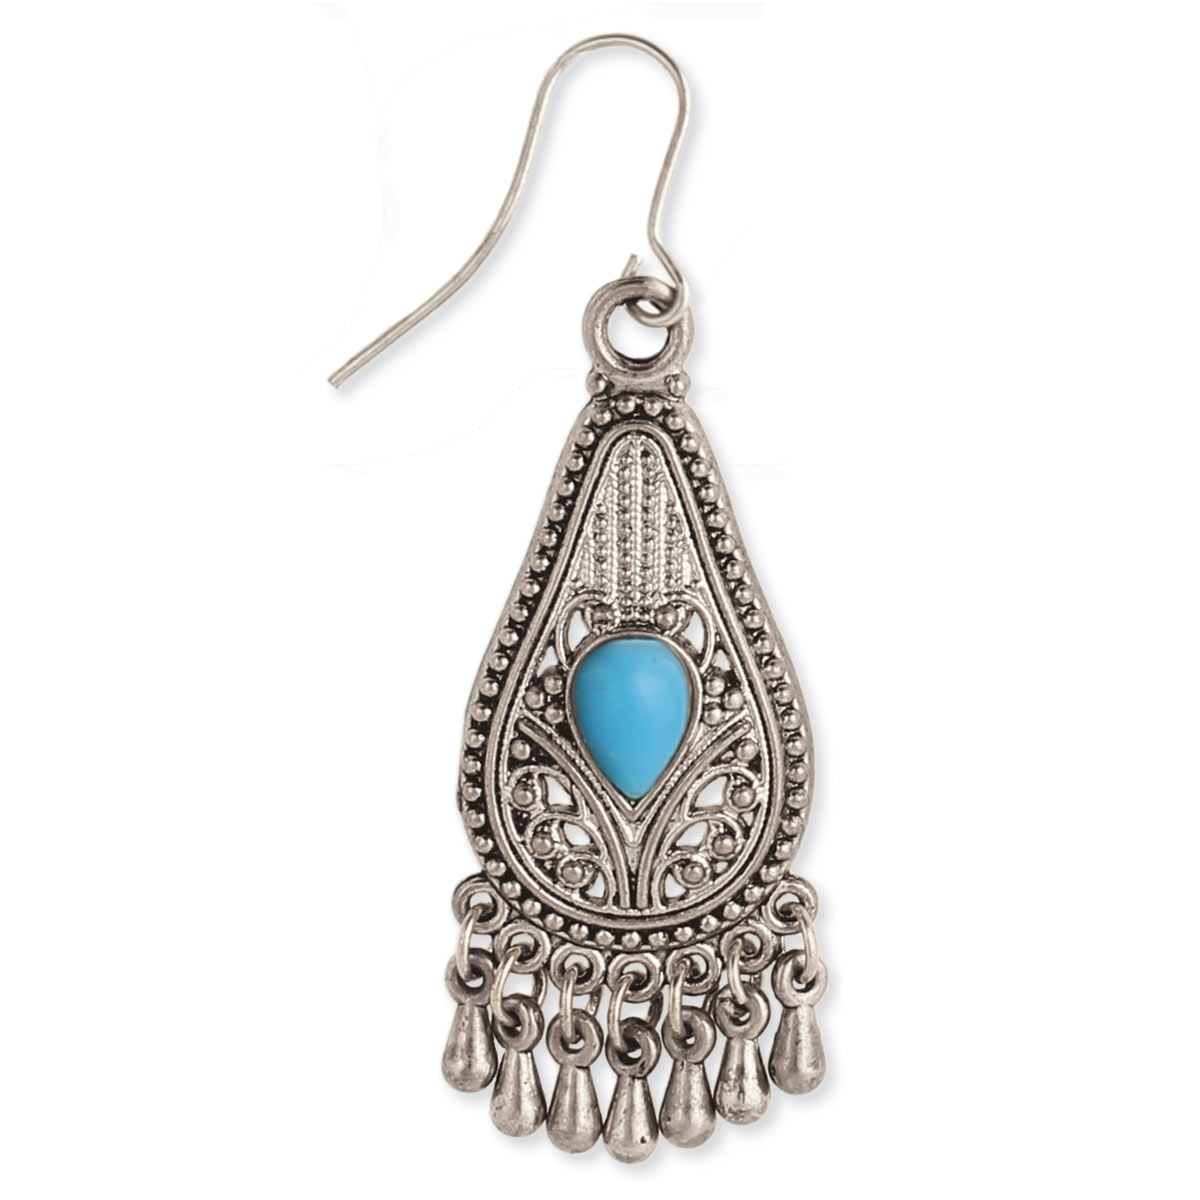 Antiqued Silver Teardrop Dangle Beaded Earrings